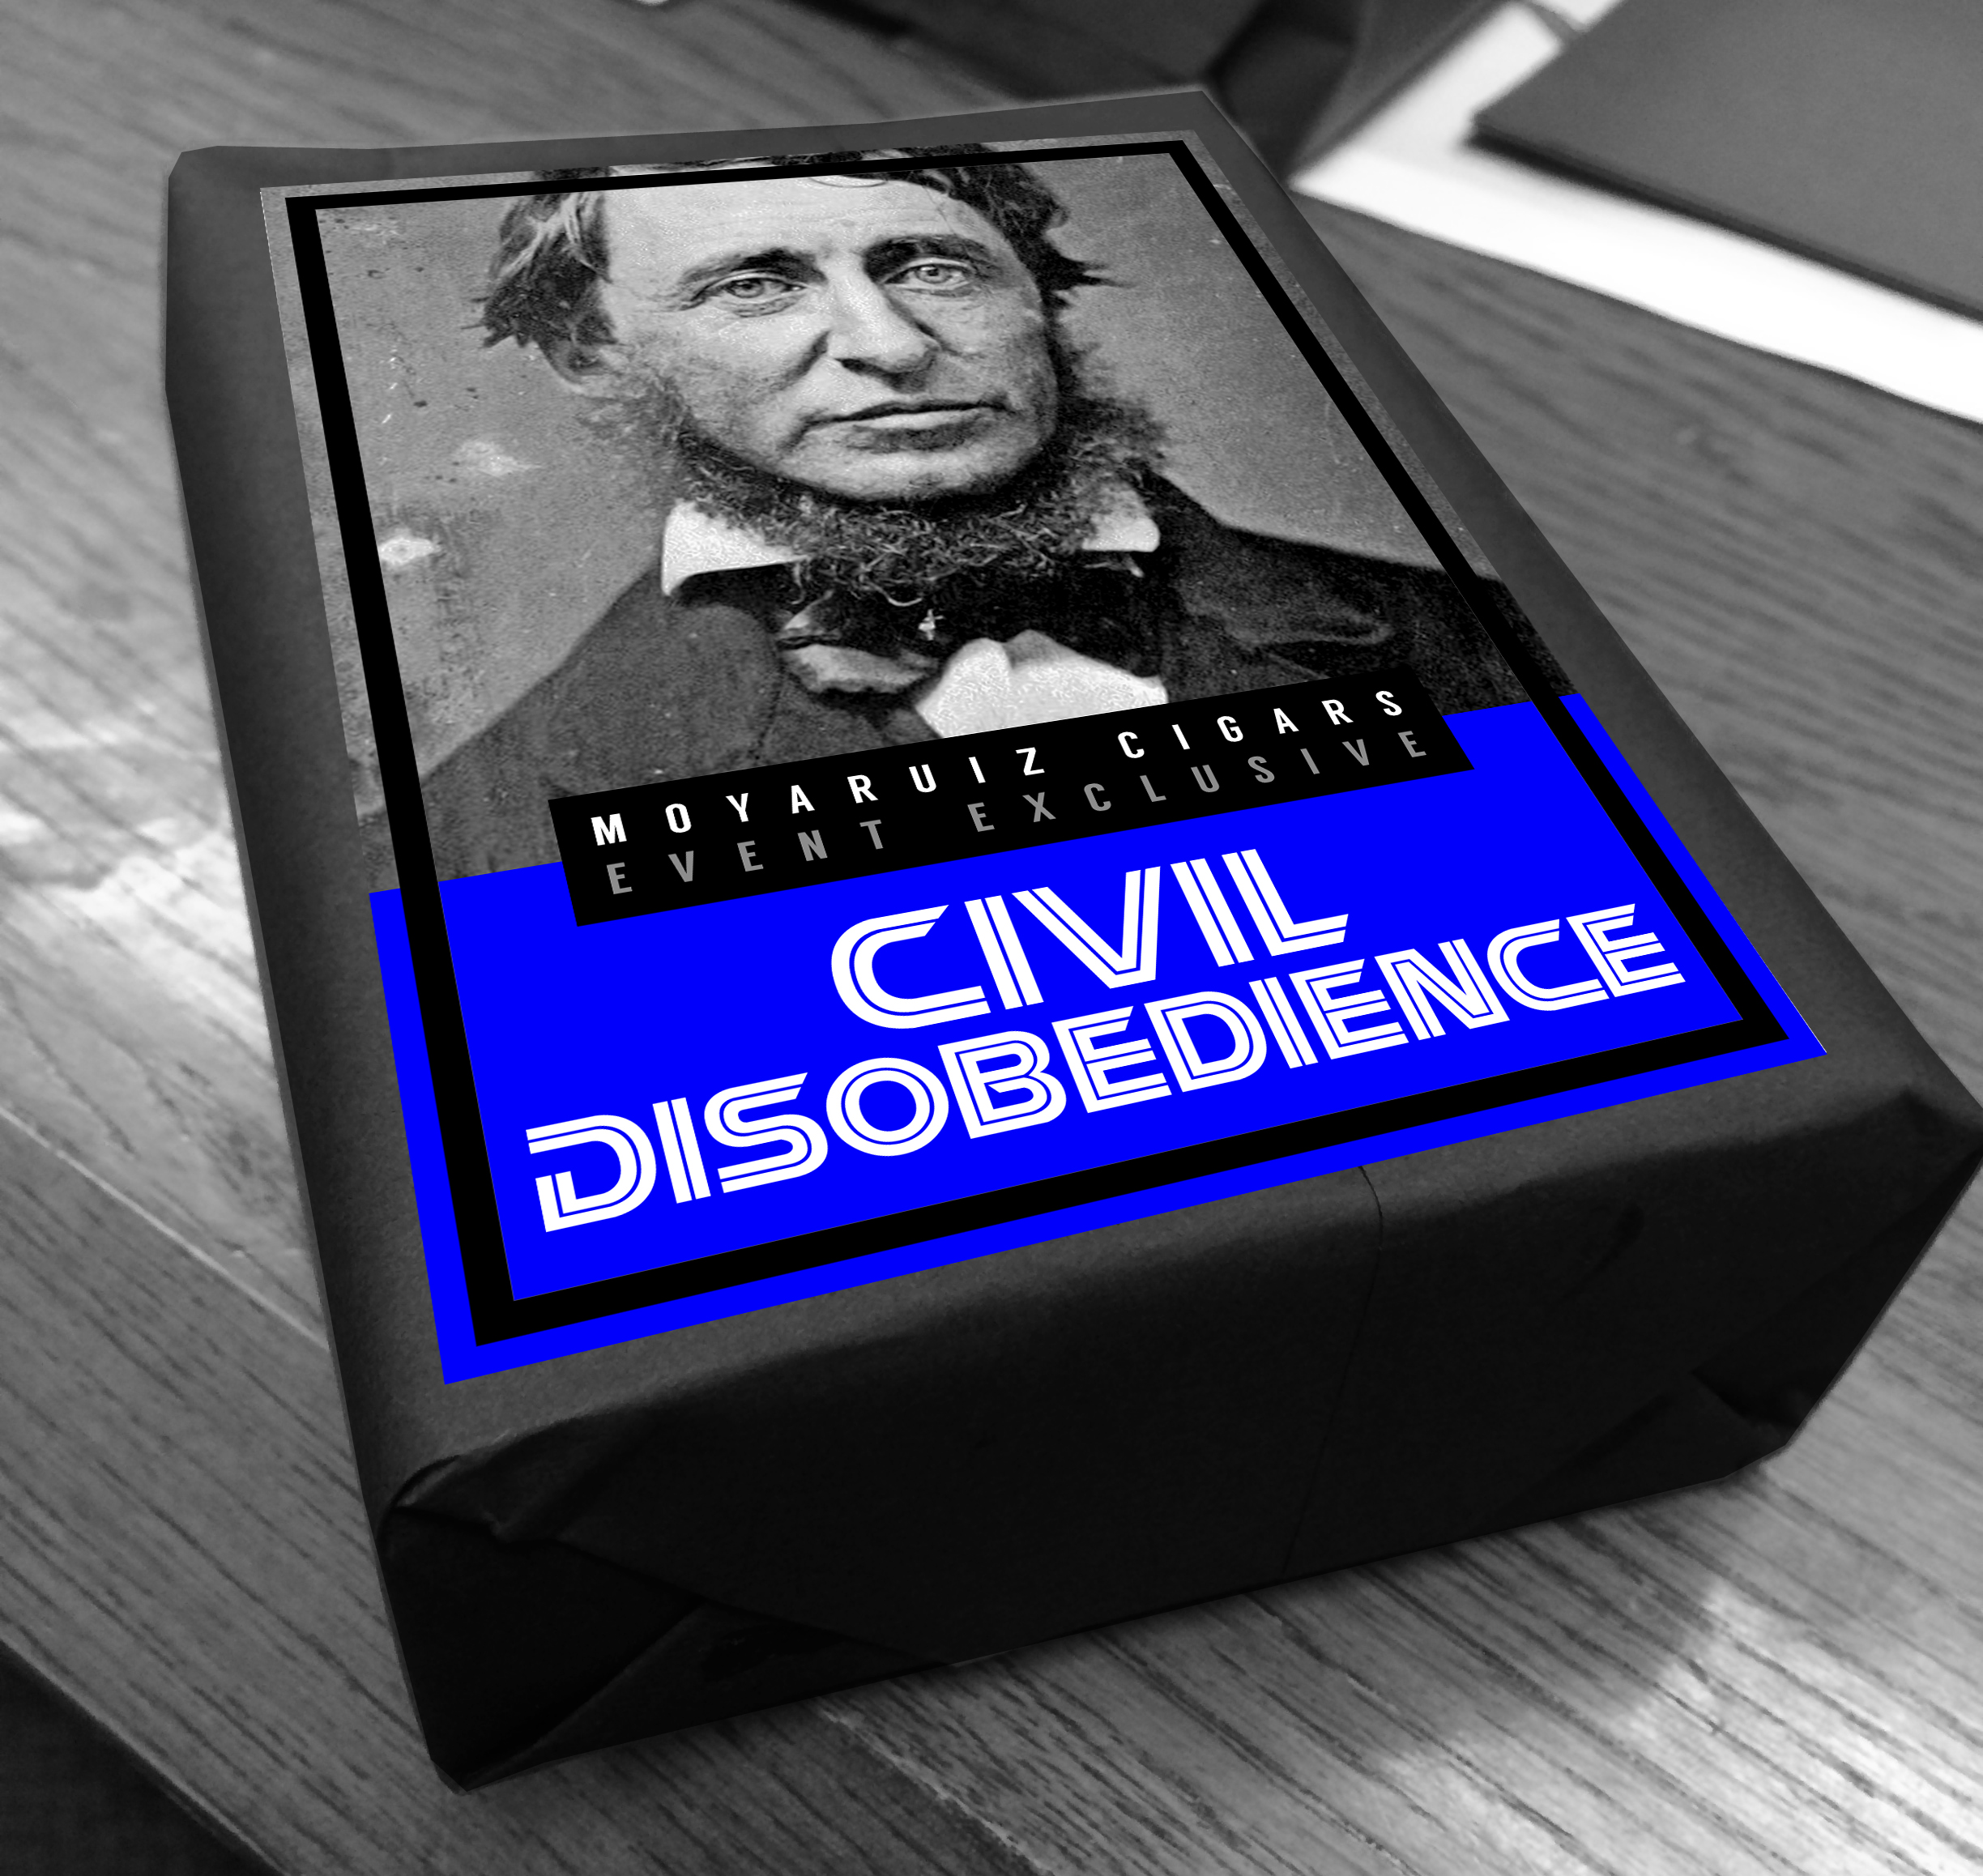 cigar news civil disobedience announced as moyaruiz event cigar moyaruiz civil disobedience bundle civil disobedience will feature an